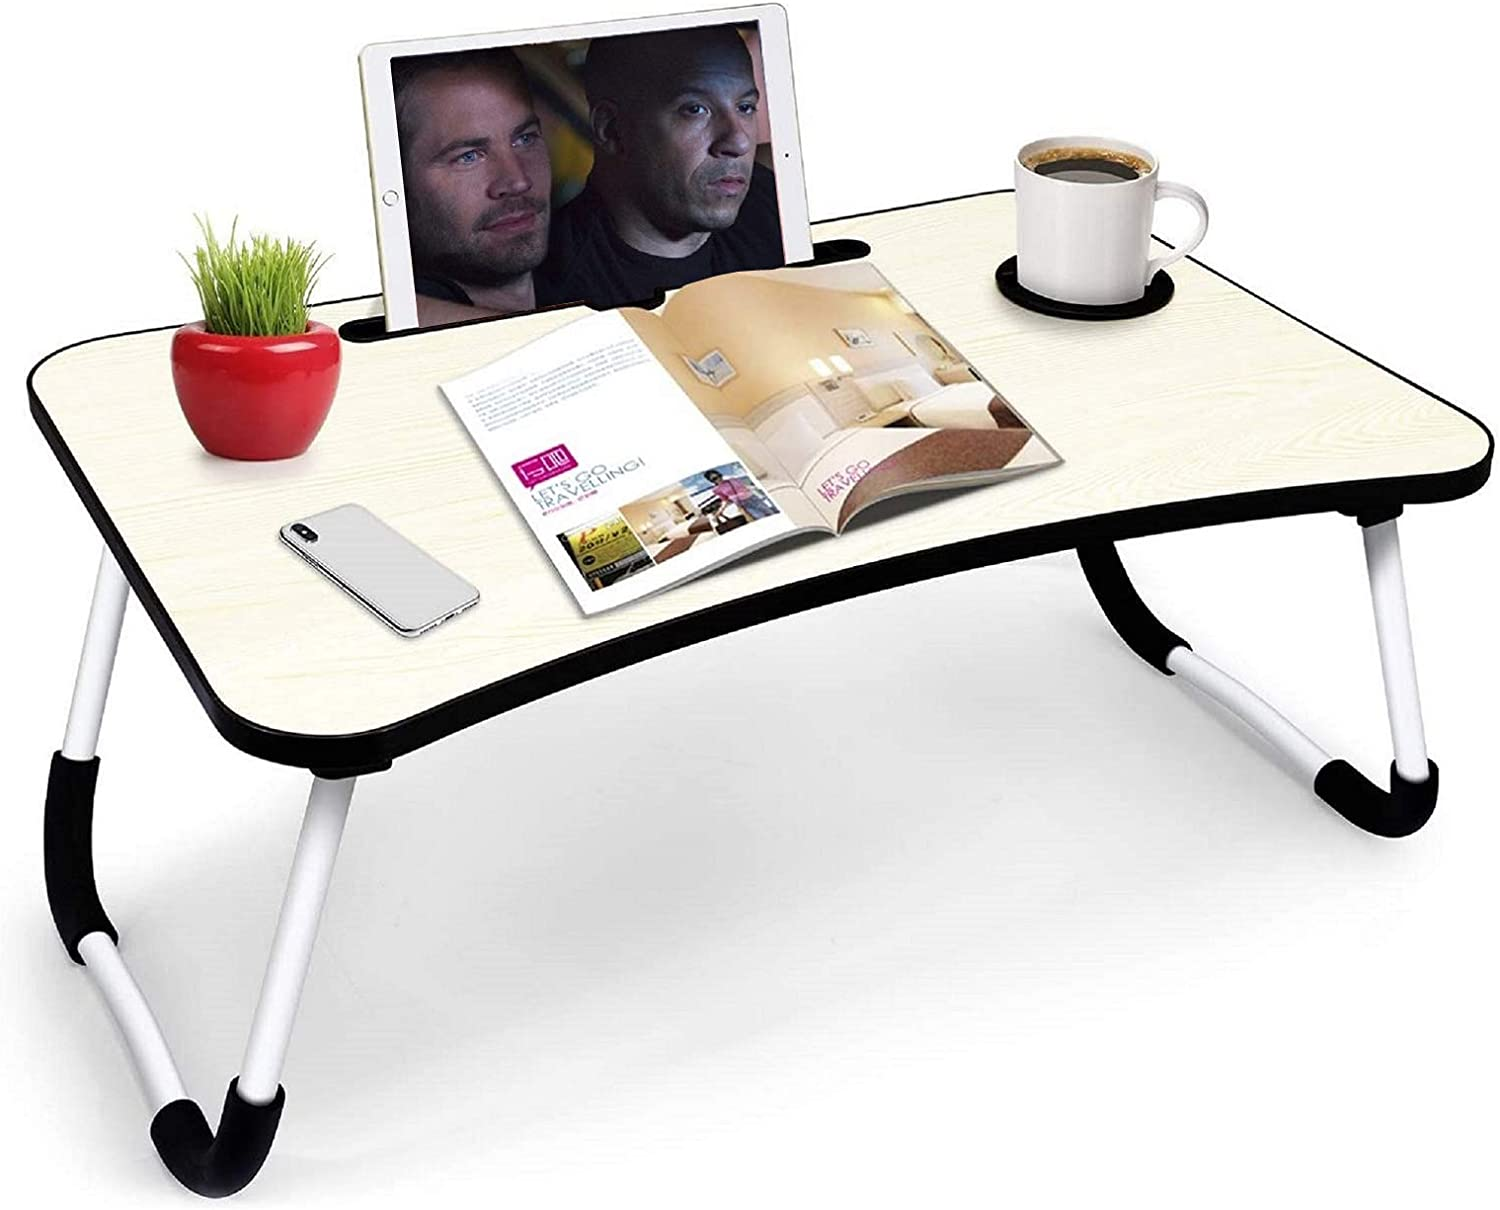 Bed Table,Laptop Lap Desk,Bed Table Tray Foldable Legs,Bed Table Tray for Writing Eating and Laptop,Laptop Desk Stand for Bed and Sofa